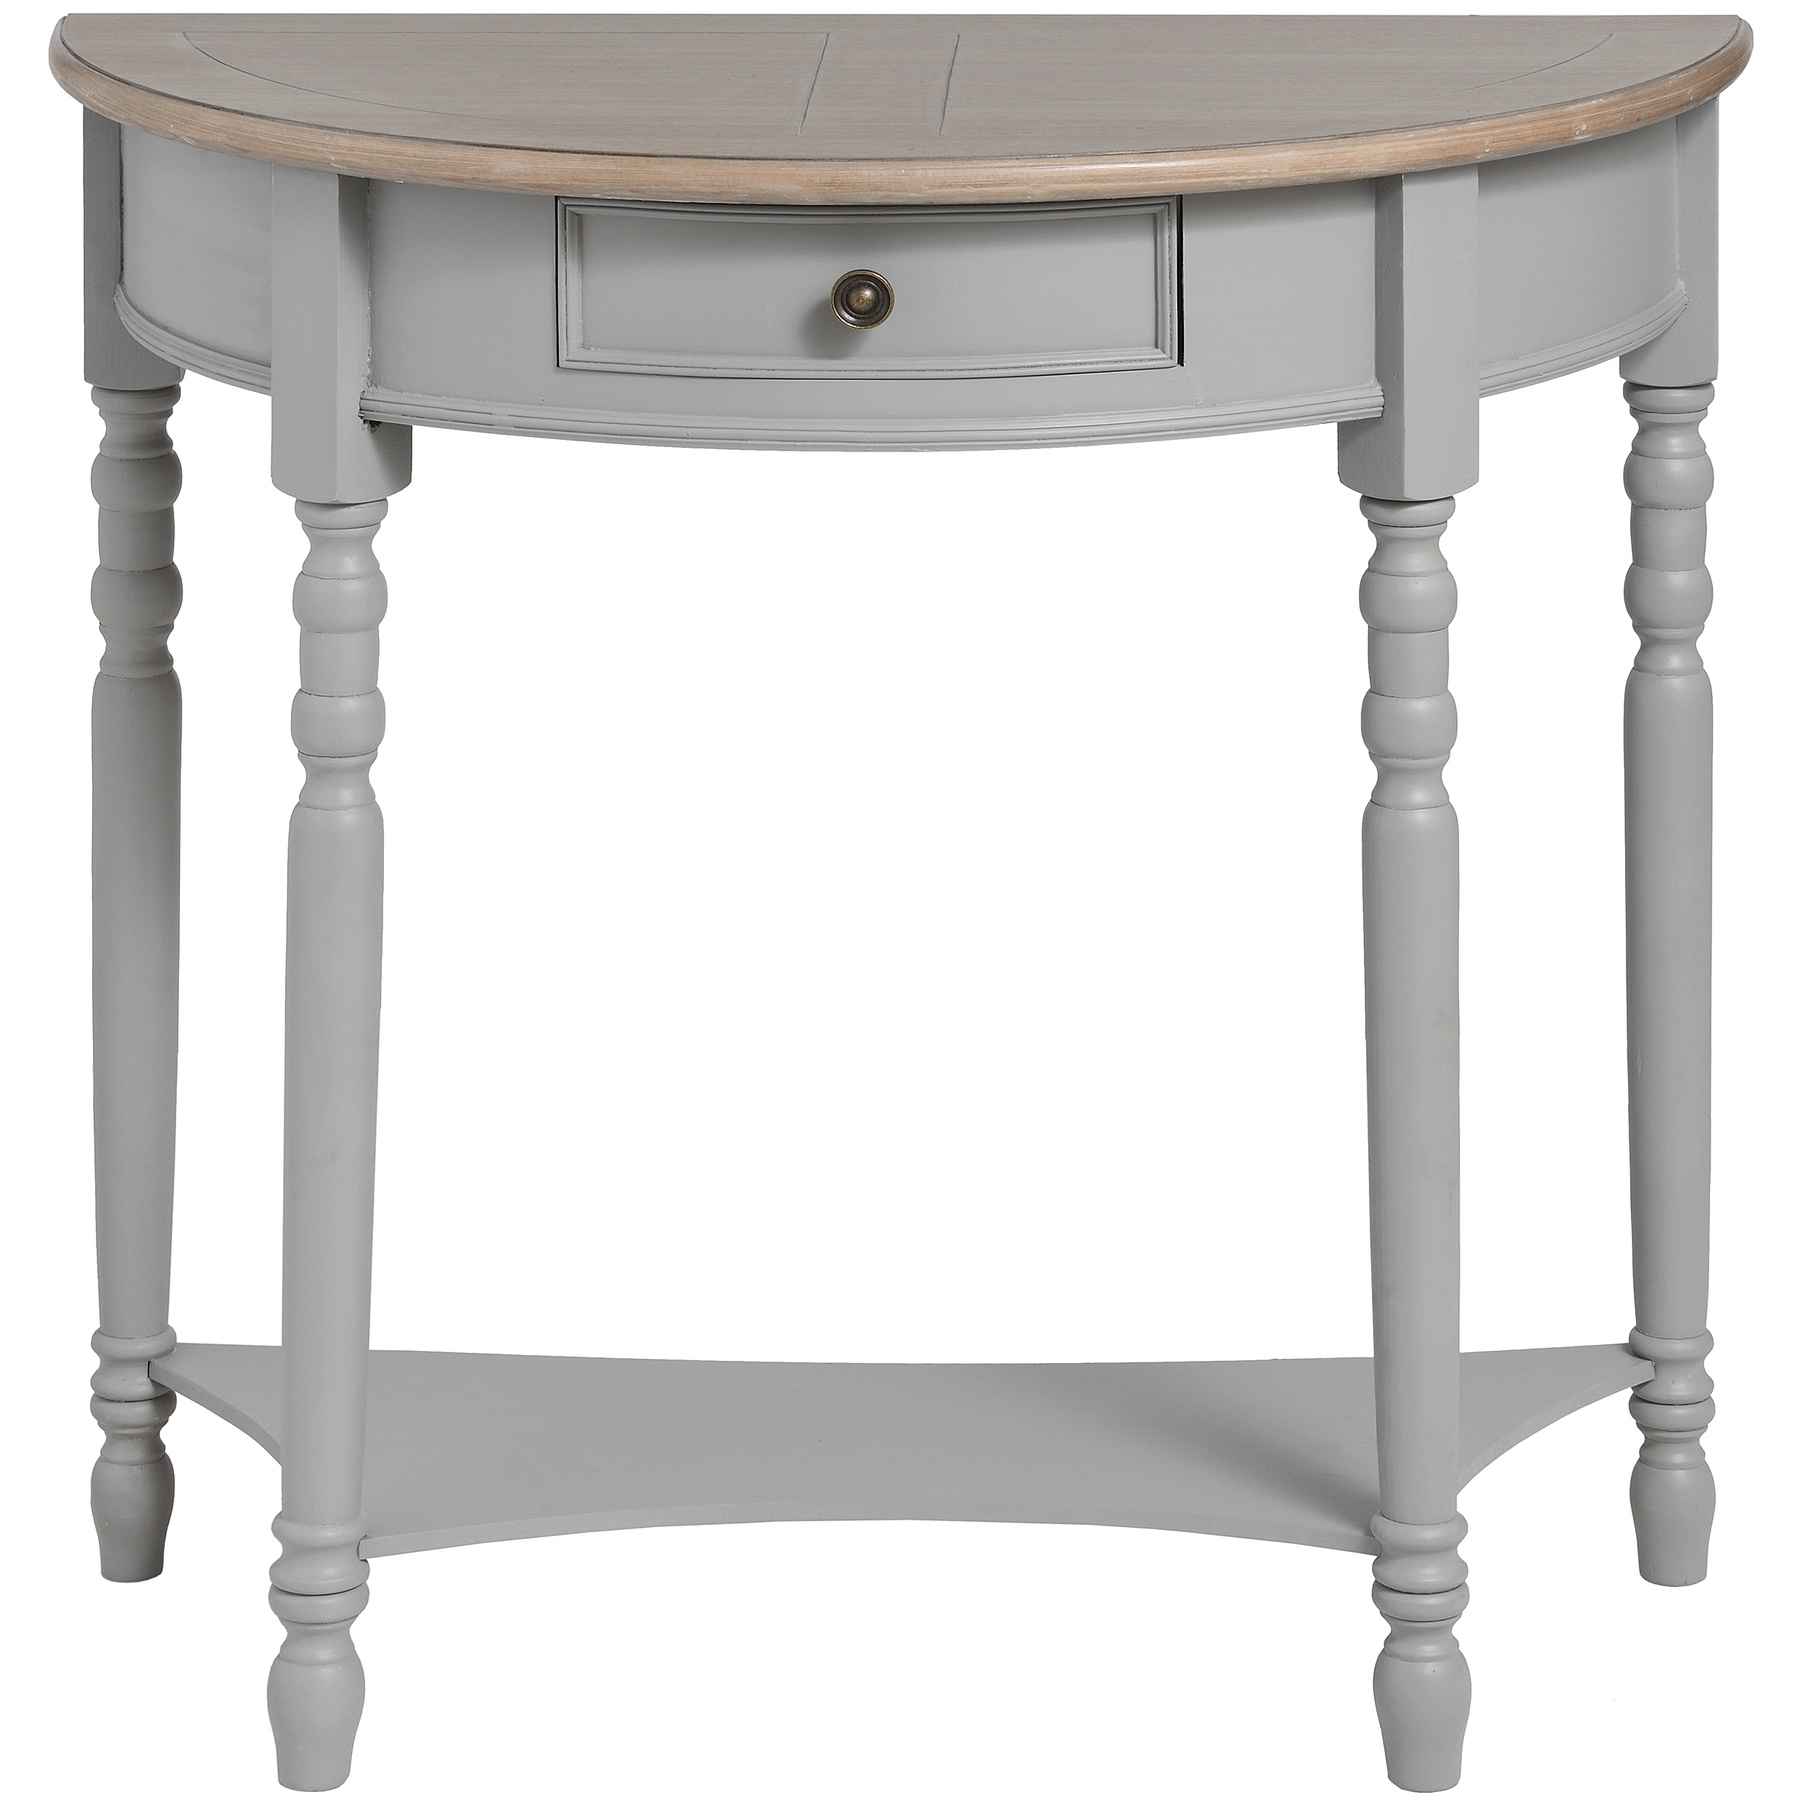 Pretty Hi Charles Half Moon Table Hi Charles Half Moon Table Country Furniture Barn Half Moon Table Cloth Half Moon Table Chairs houzz-02 Half Moon Table